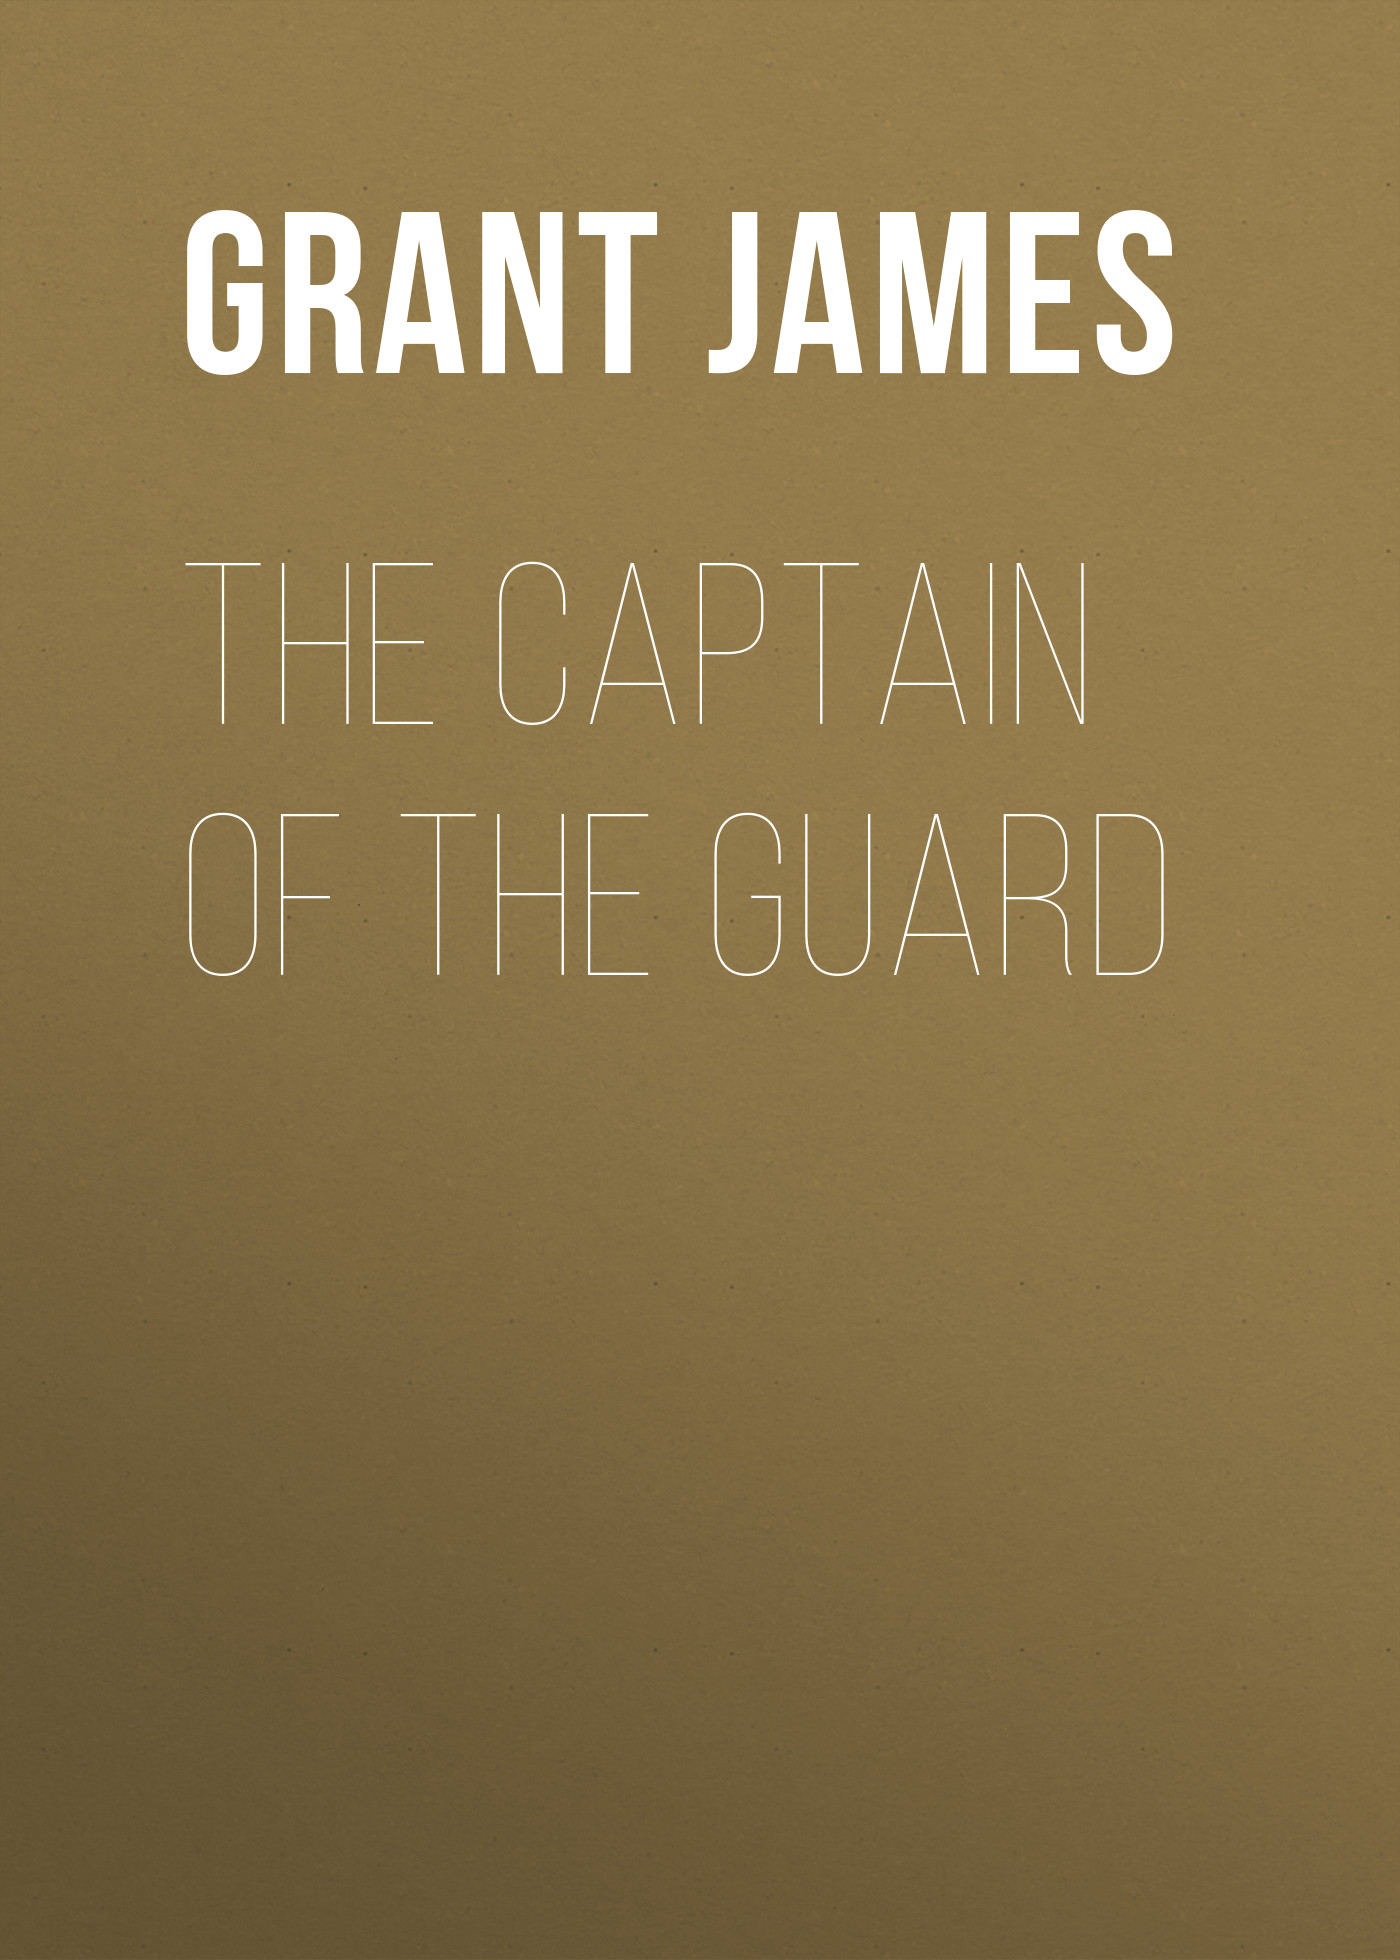 Grant James The Captain of the Guard